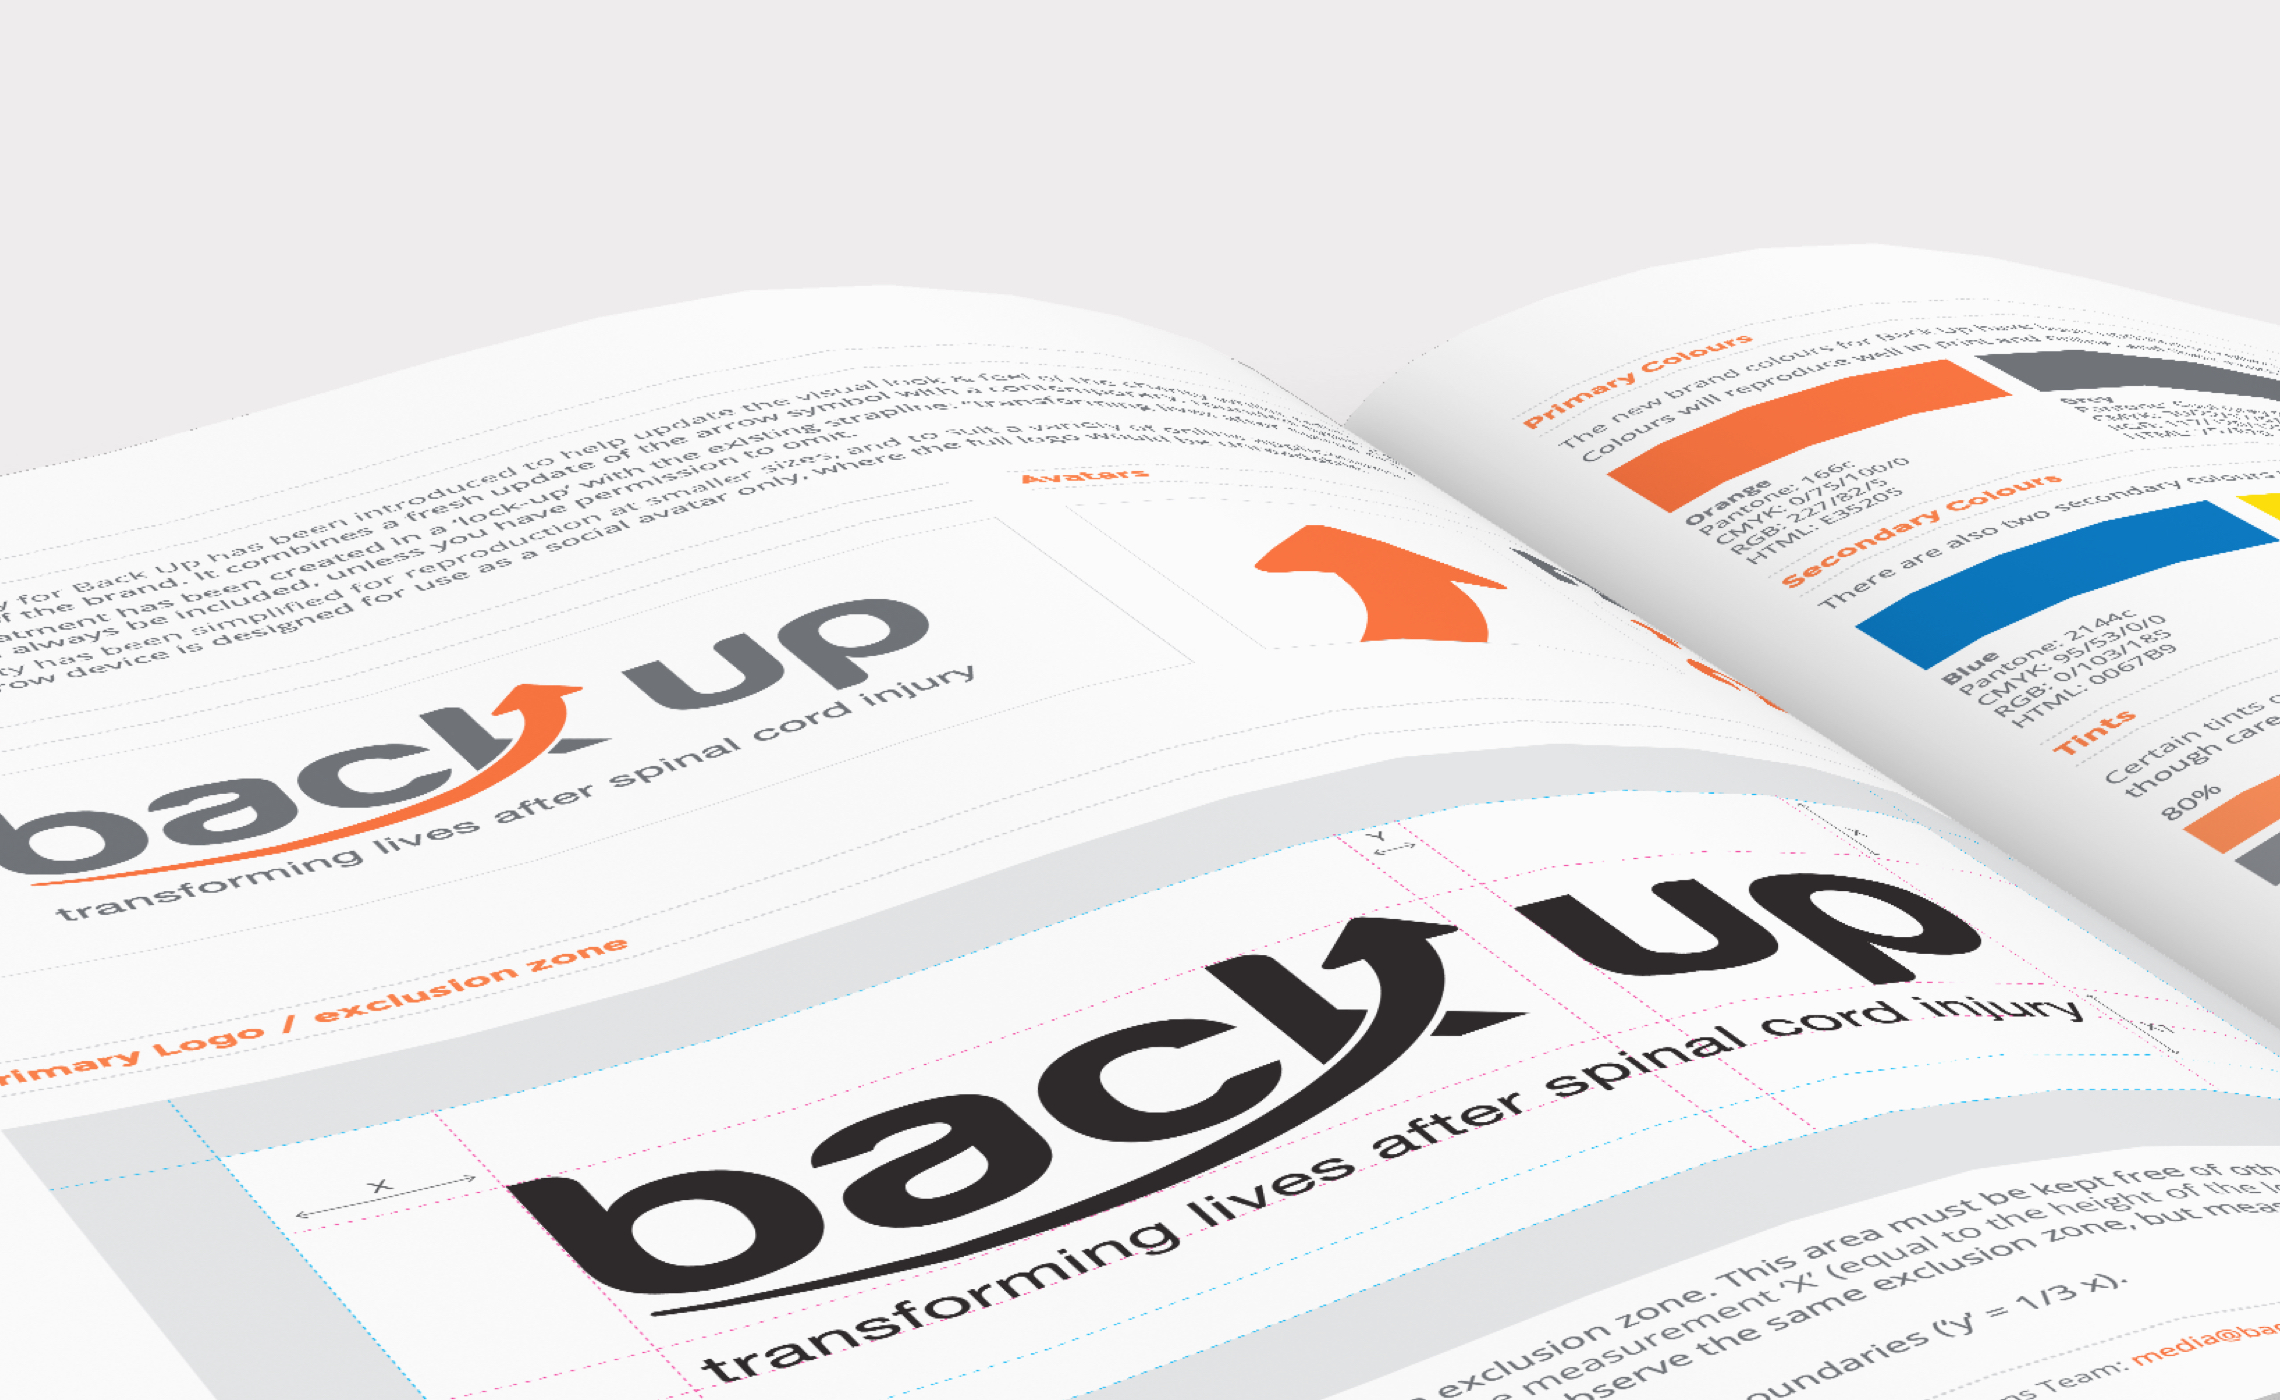 Back Up – brand guidelines